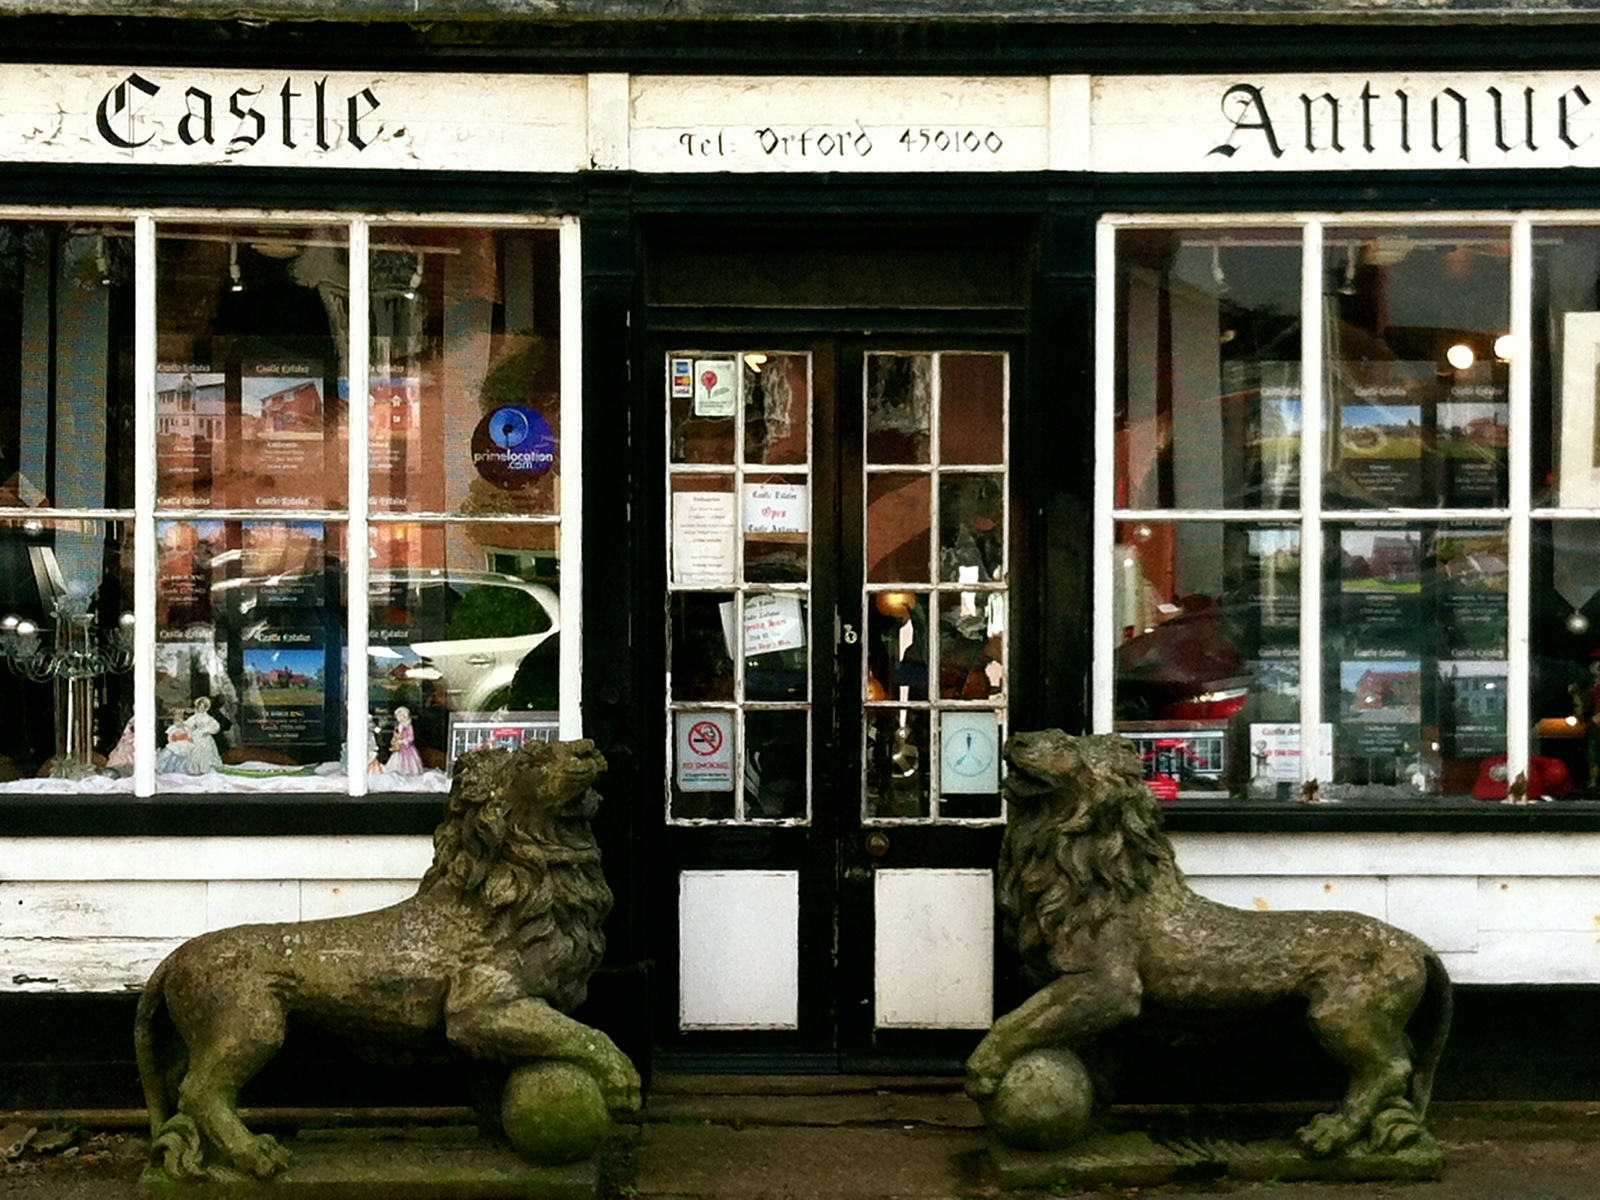 Both antique and kitch -- a wonderful little shop.